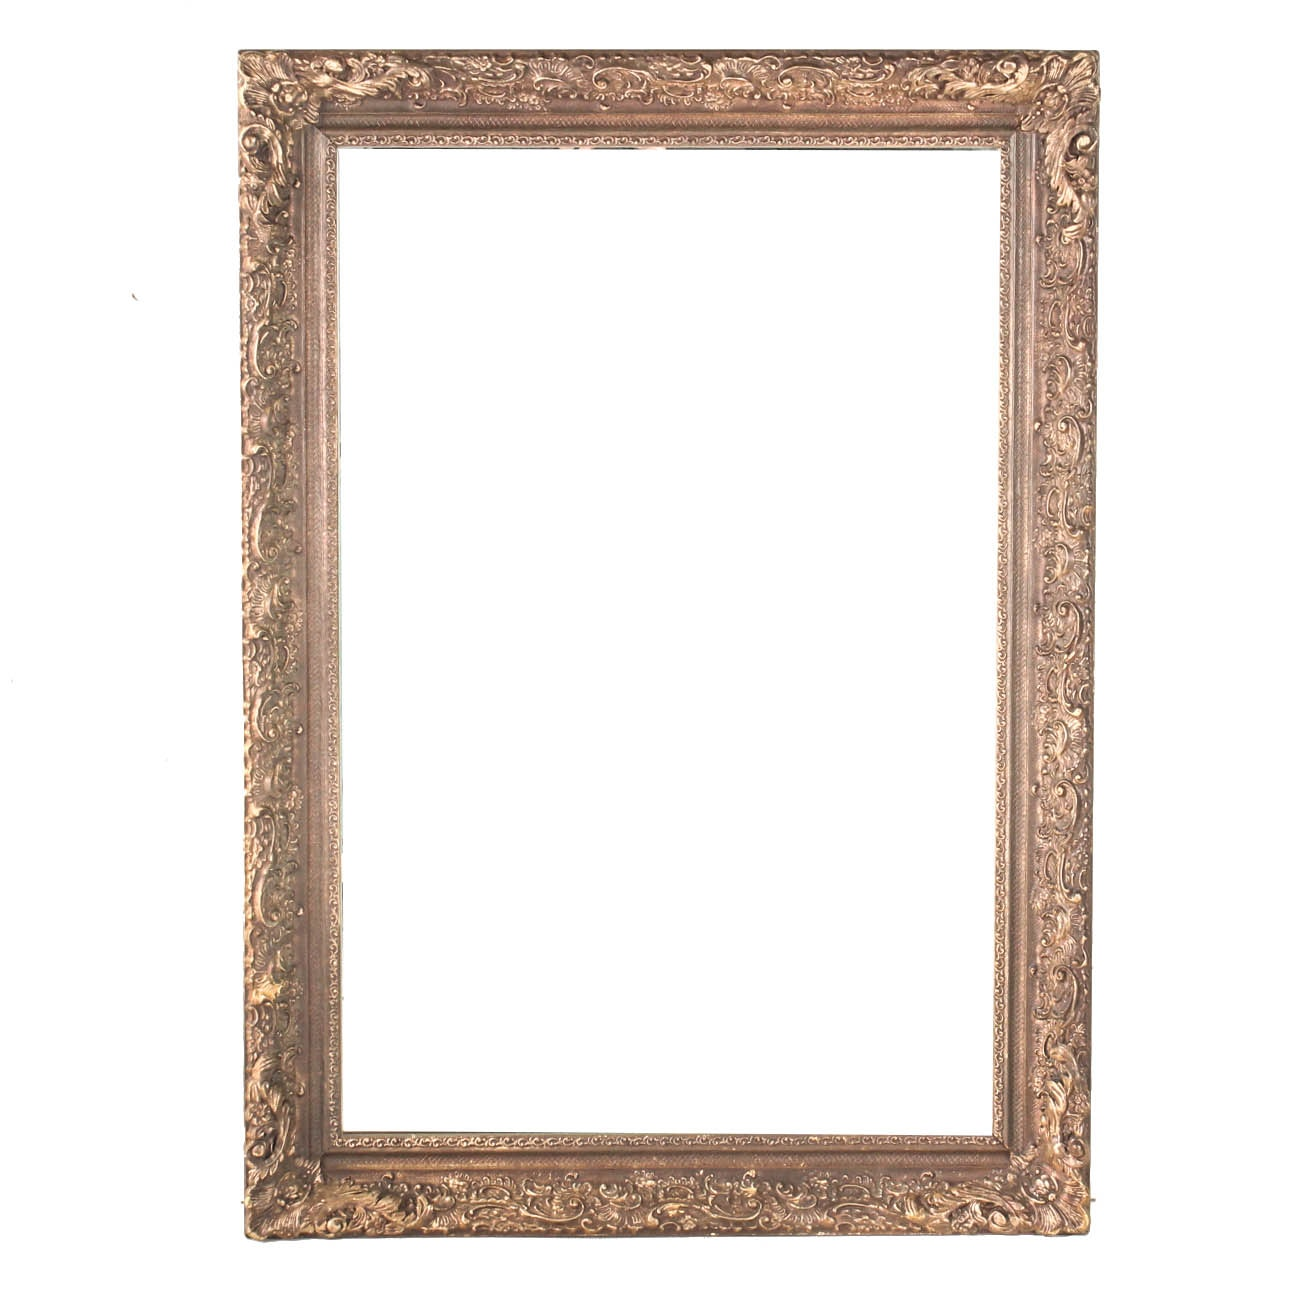 Ornate Wall Mirror with Gold Tone Frame